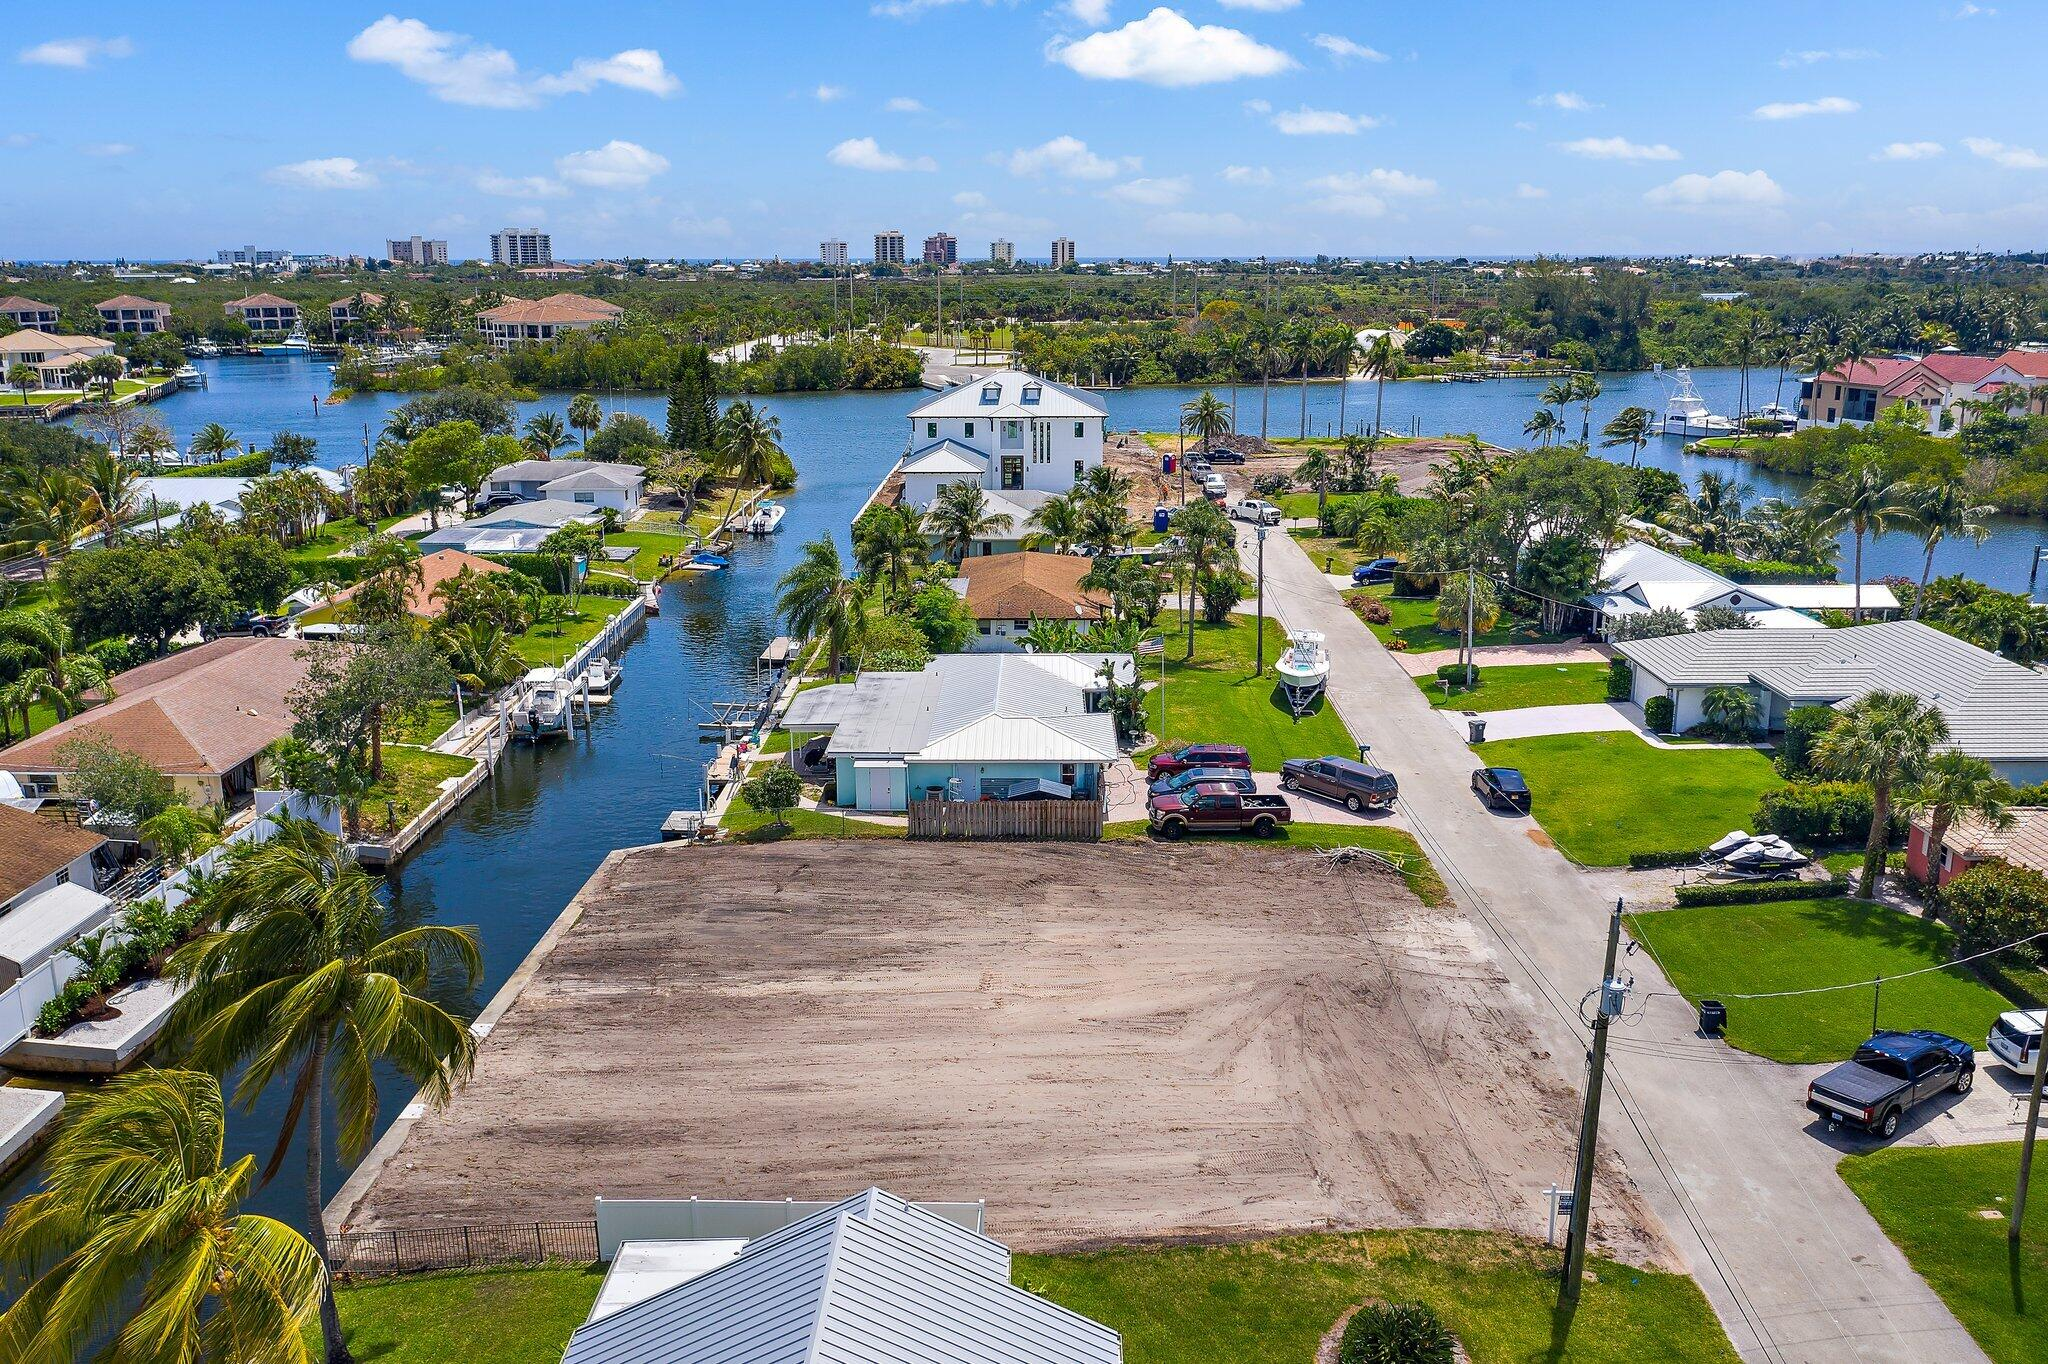 BUILD YOUR DREAM HOME! Unbelievable Waterfront Property With No Fixed Bridges, in the Heart of Palm Beach Gardens. Bring Your Boat! This Lot Sits on a Deep Water Canal and is a Stones Throw From the Intracoastal Waterway! Watch the Annual Holiday Boat Parade From the Privacy of Your Backyard, or join in on the fun! Located in Unincorporated Palm Beach County, lower taxes, NO HOA, No Restrictions!This Property is Shovel Ready! Permits are in to Construct an Unbelievable 3,400 sq ft 4 Bedroom/ 4.5 Bathroom Key West Inspired Semi-Custom Pool Home! Or, Scrap Those Plans and Design/Build Your Own Completely Custom Dream Home Along One of the Most Desirable Waterfront Communities in Palm Beach Gardens. A True Boaters Paradise- Don't Miss Your Chance to Build and Live Where Others Vacation